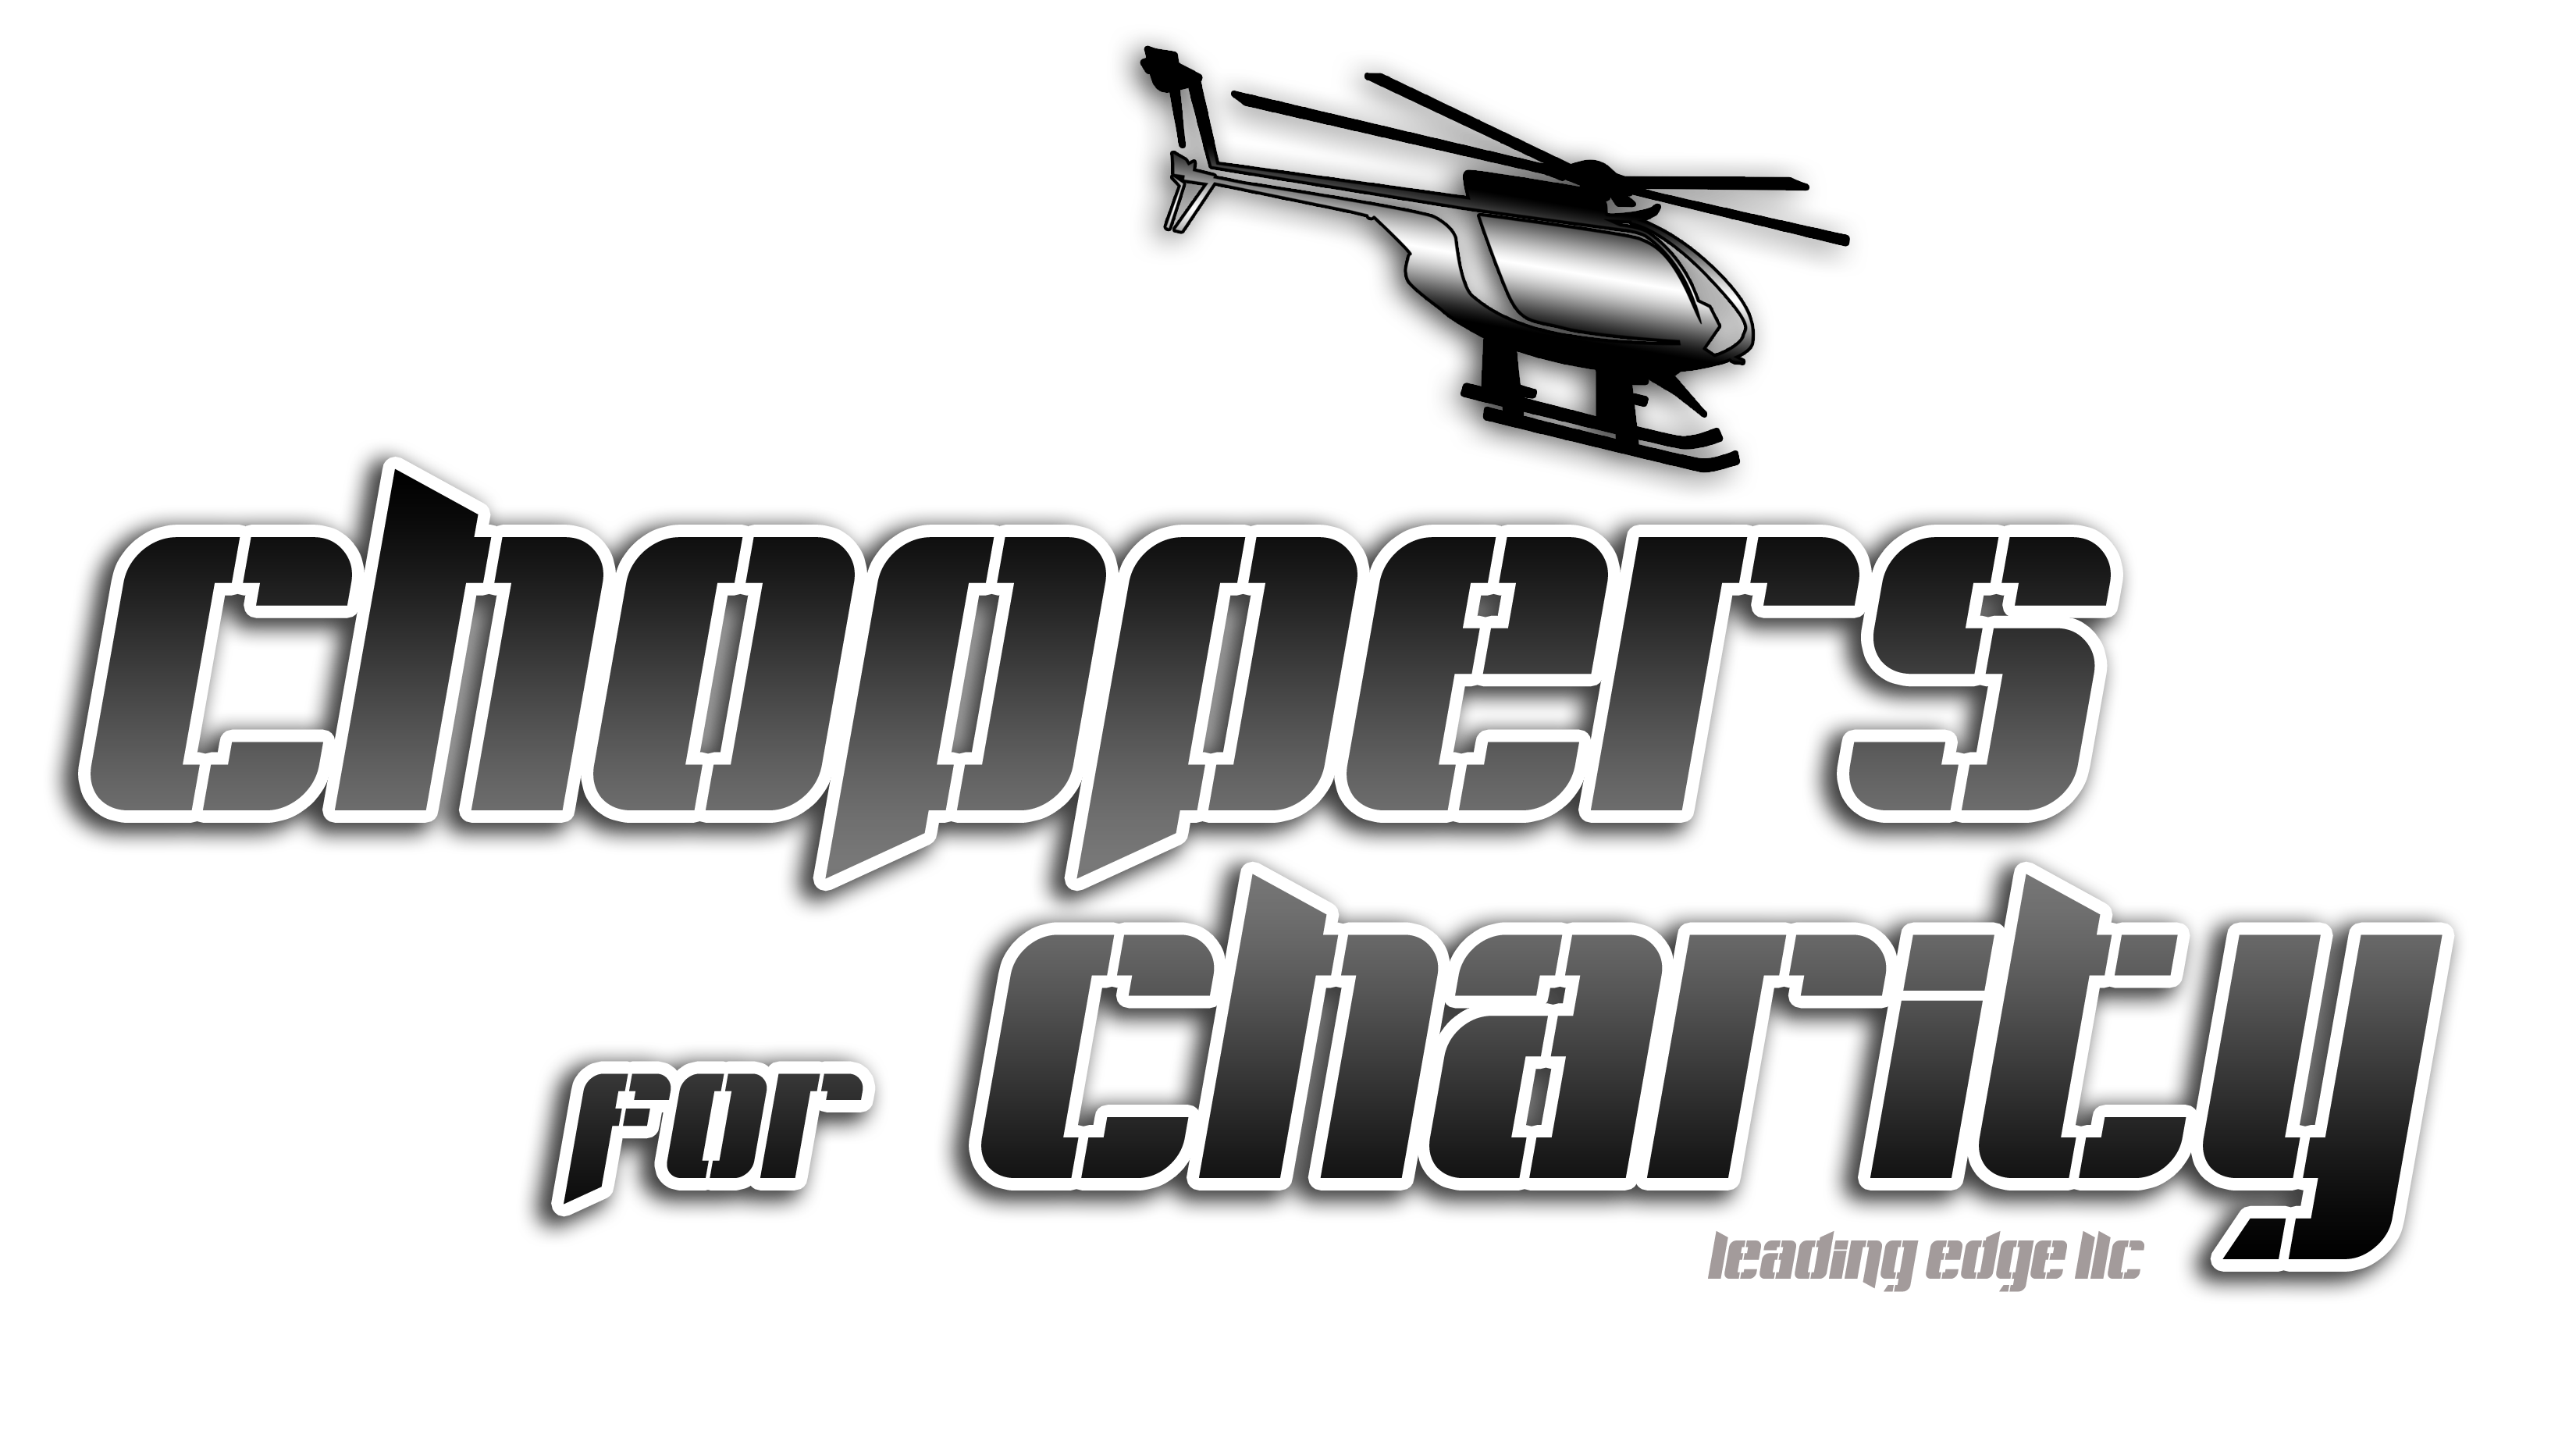 choppersforcharity